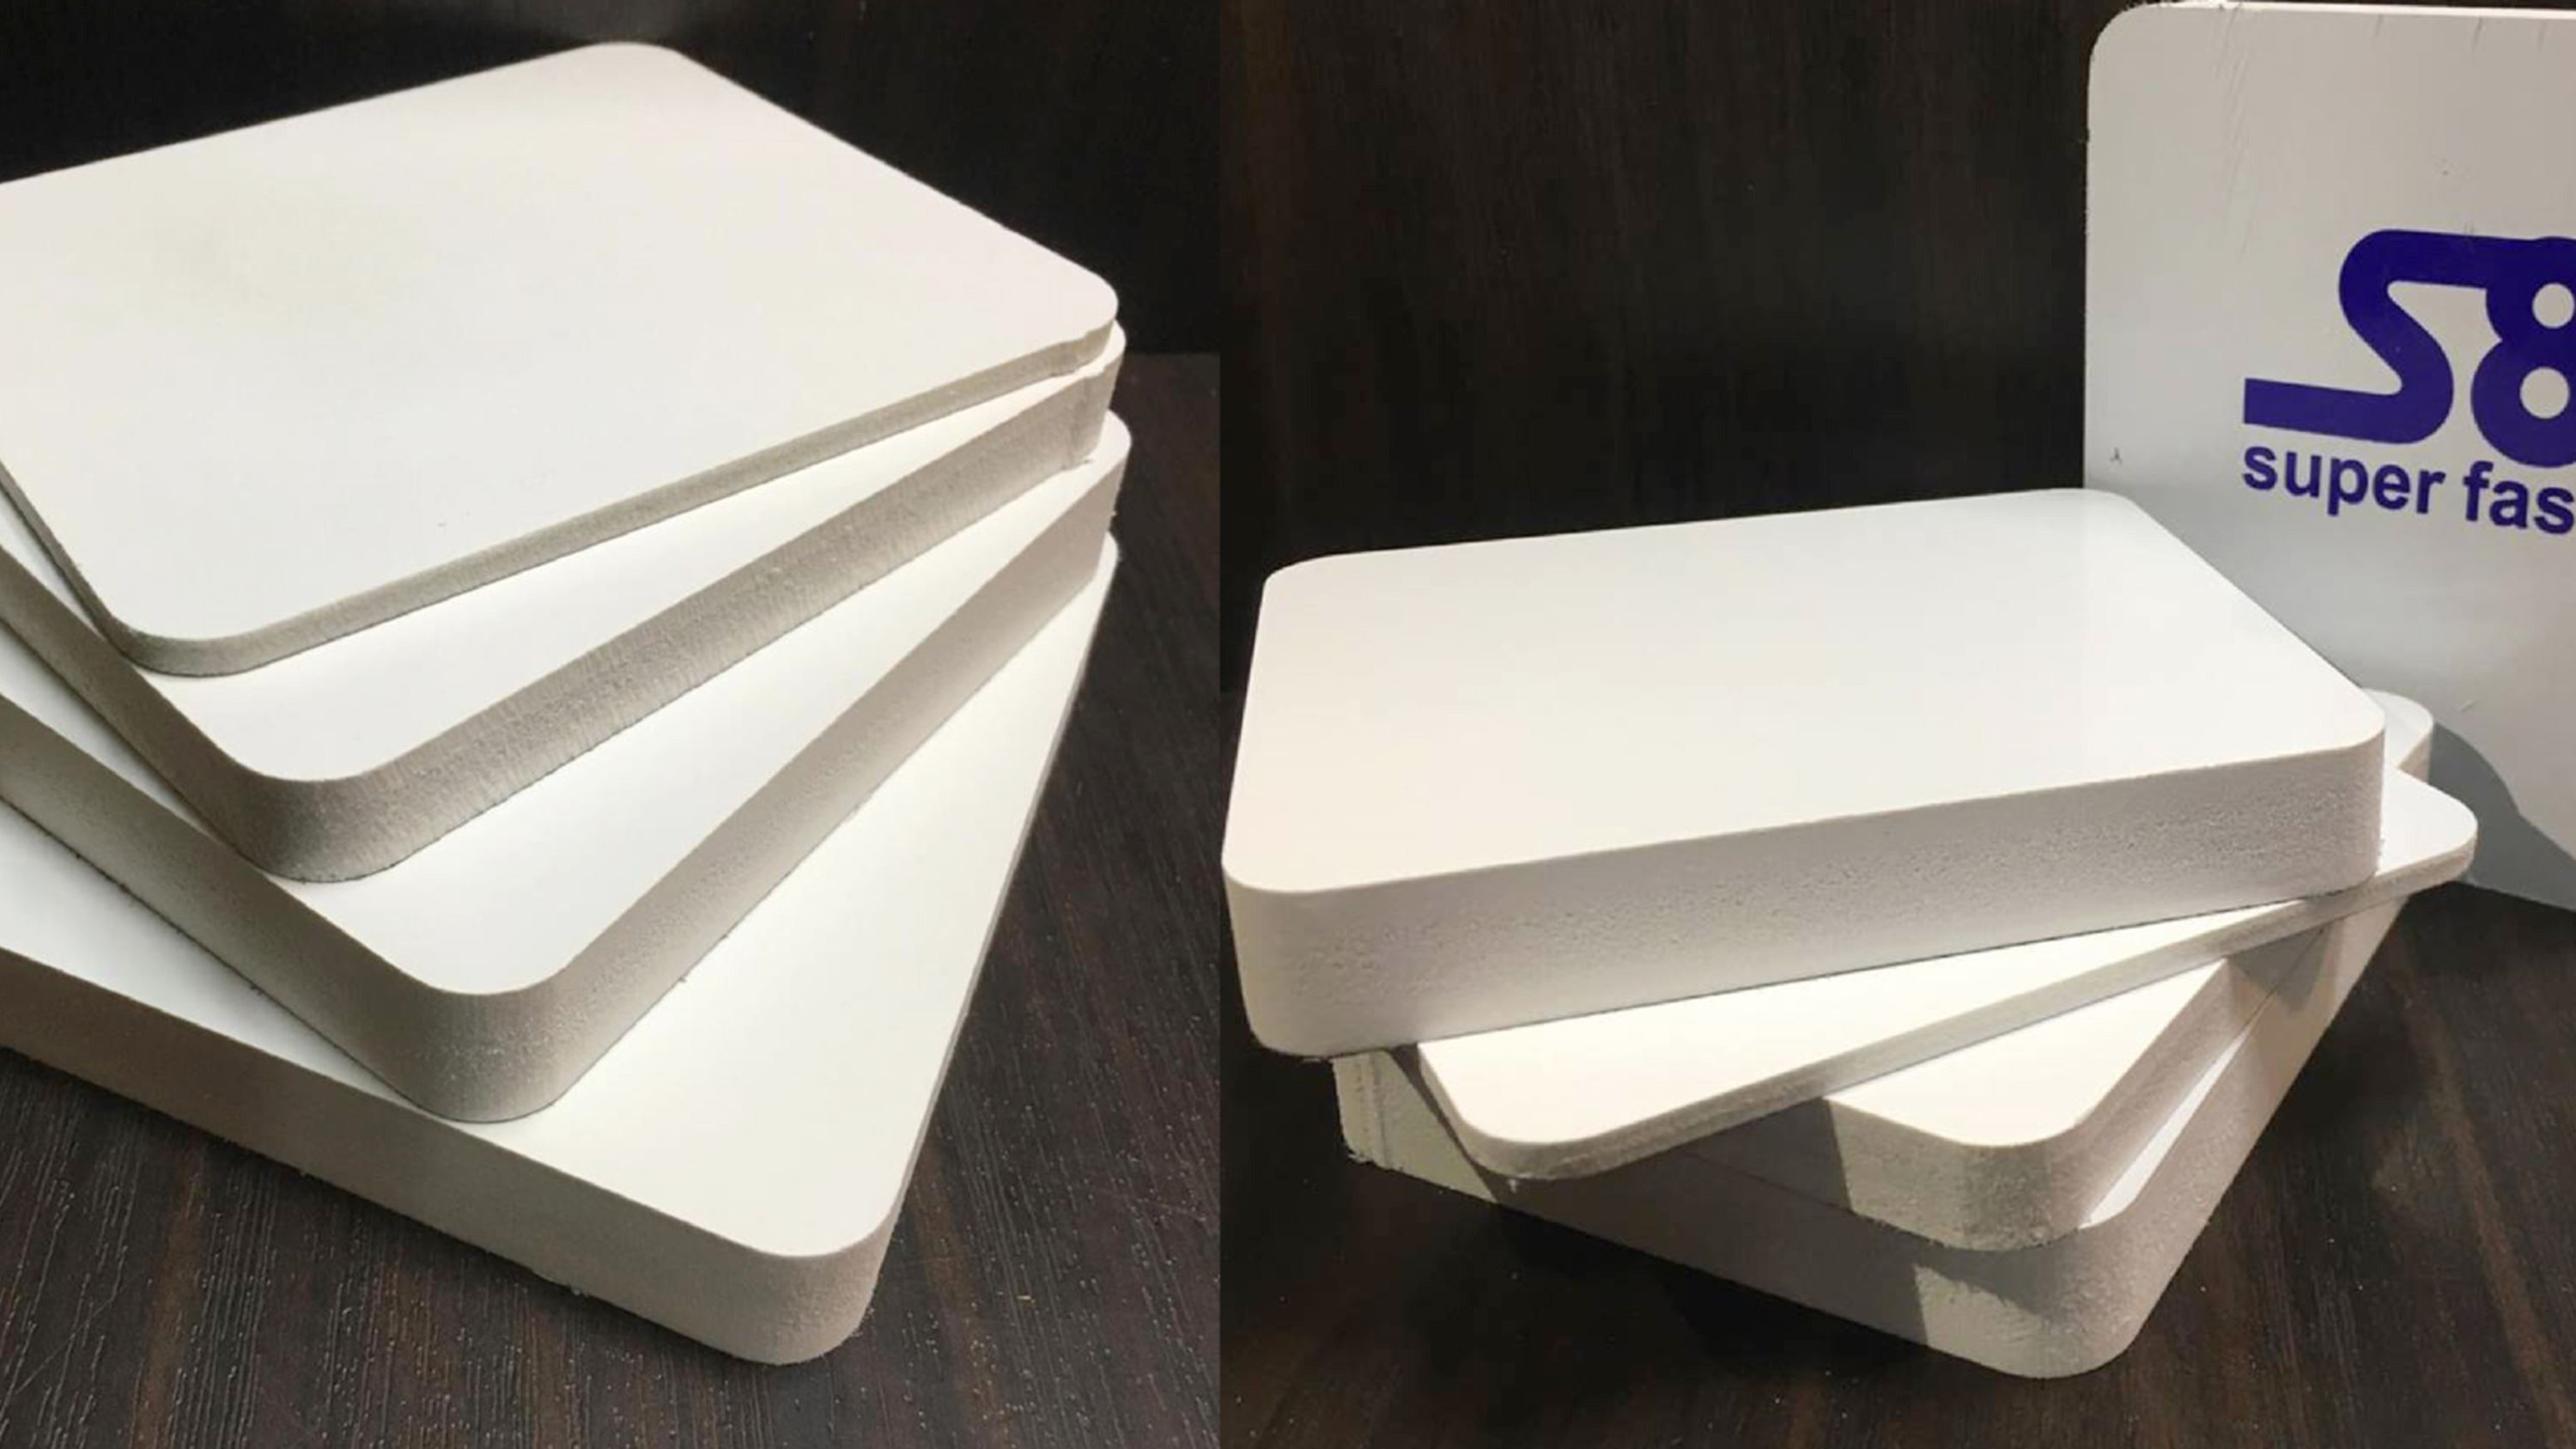 Waterproof Board for bathrooms and kitchen cabinet